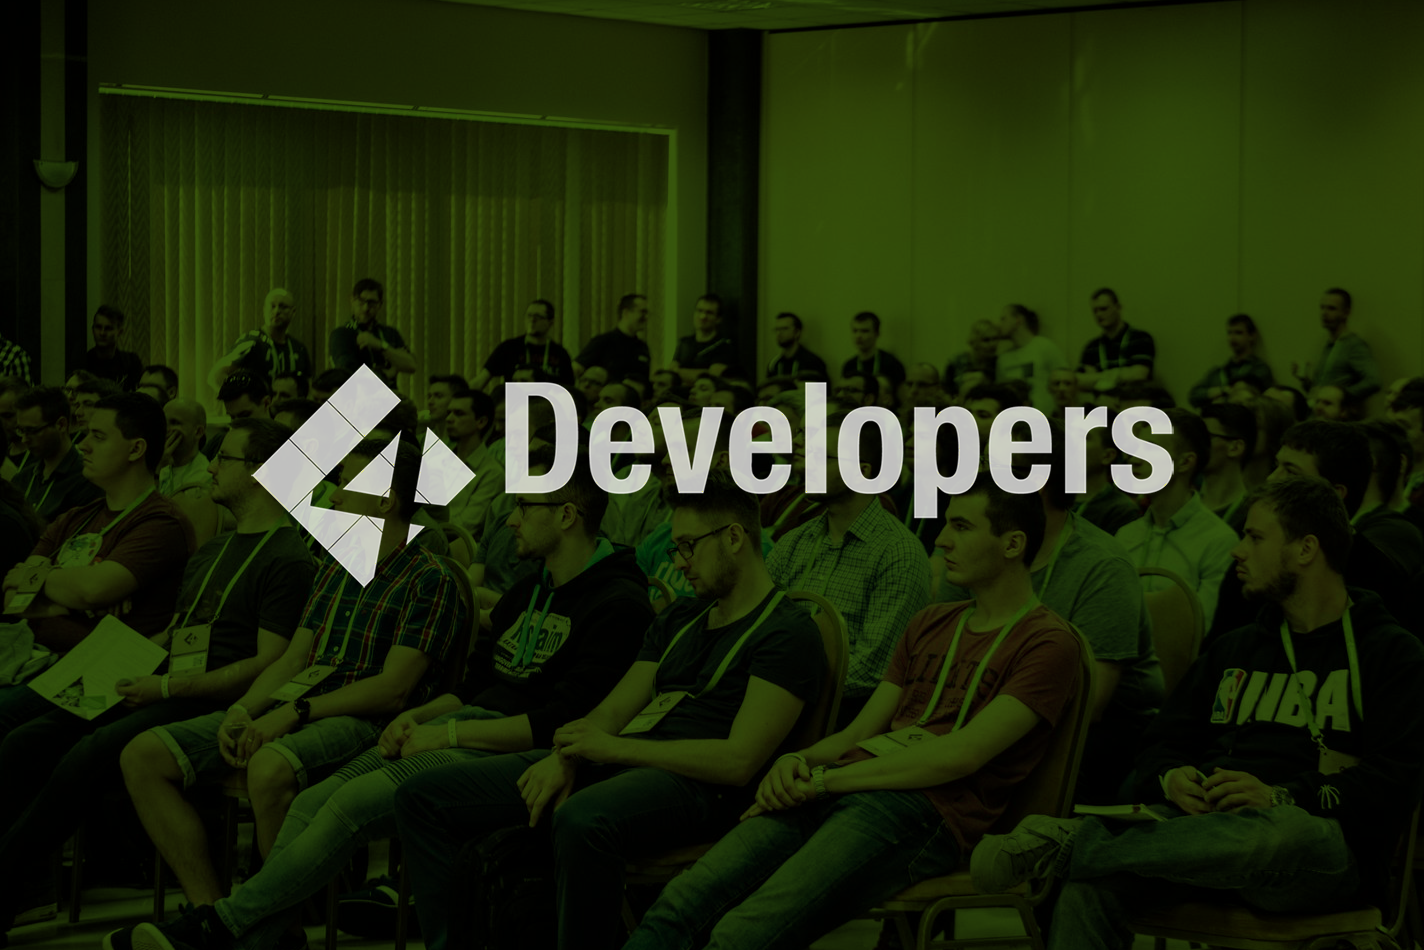 4Developers 2018: The road to true knowledge